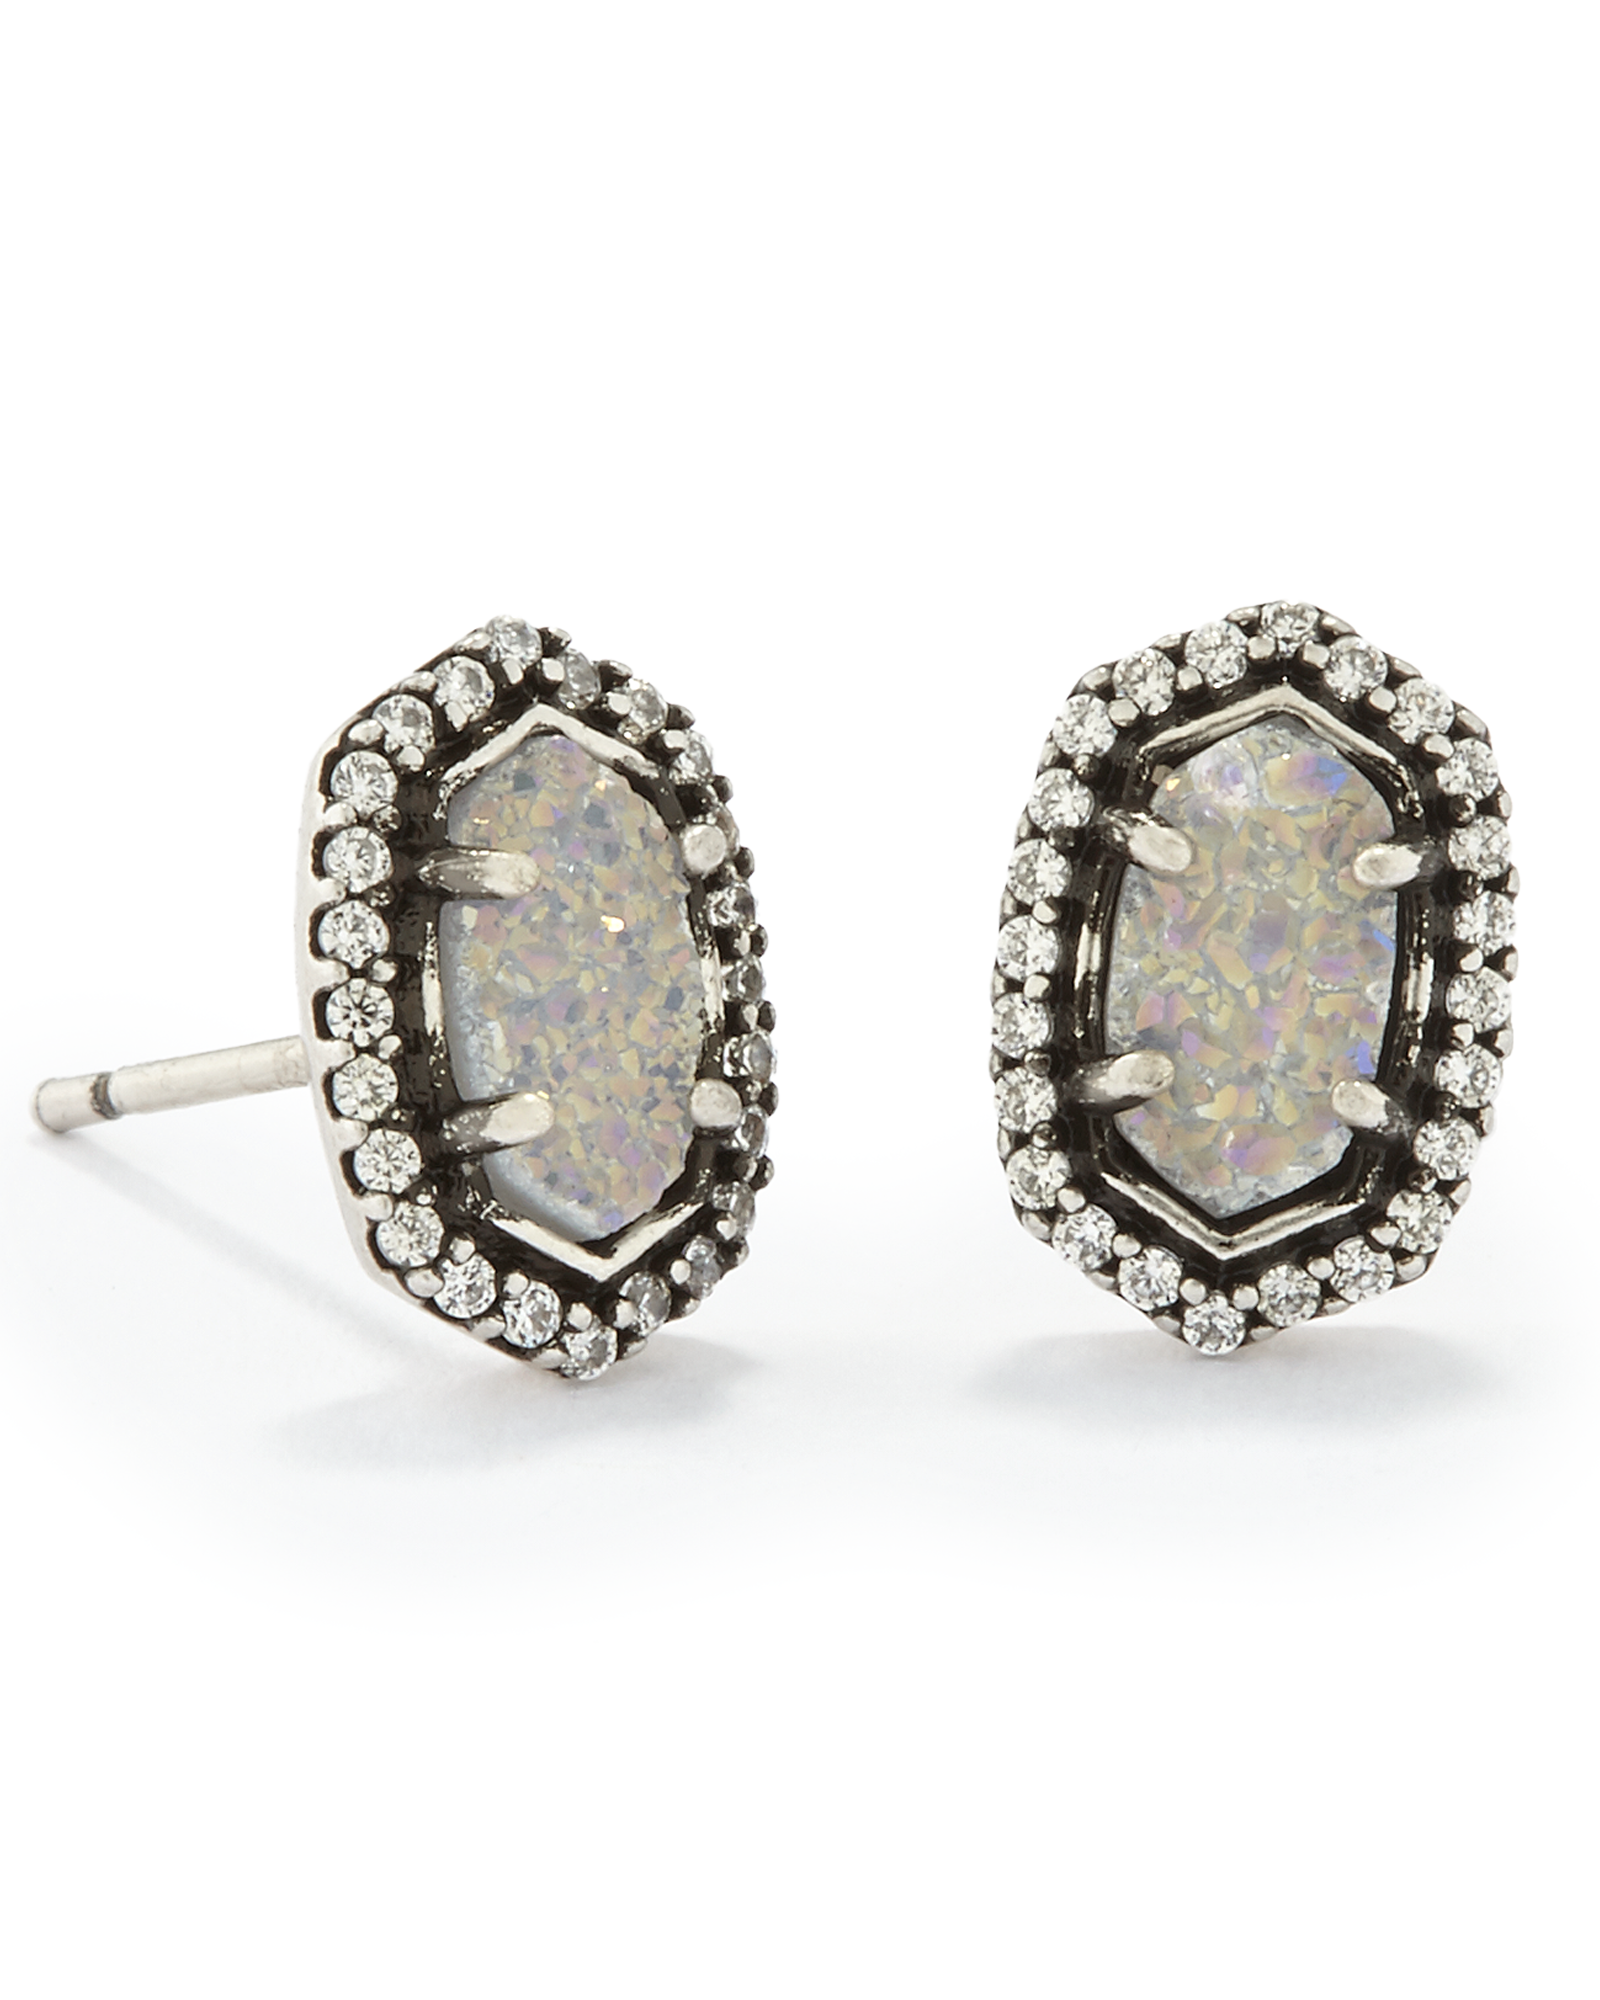 Cade Stud Earrings in Antique Silver